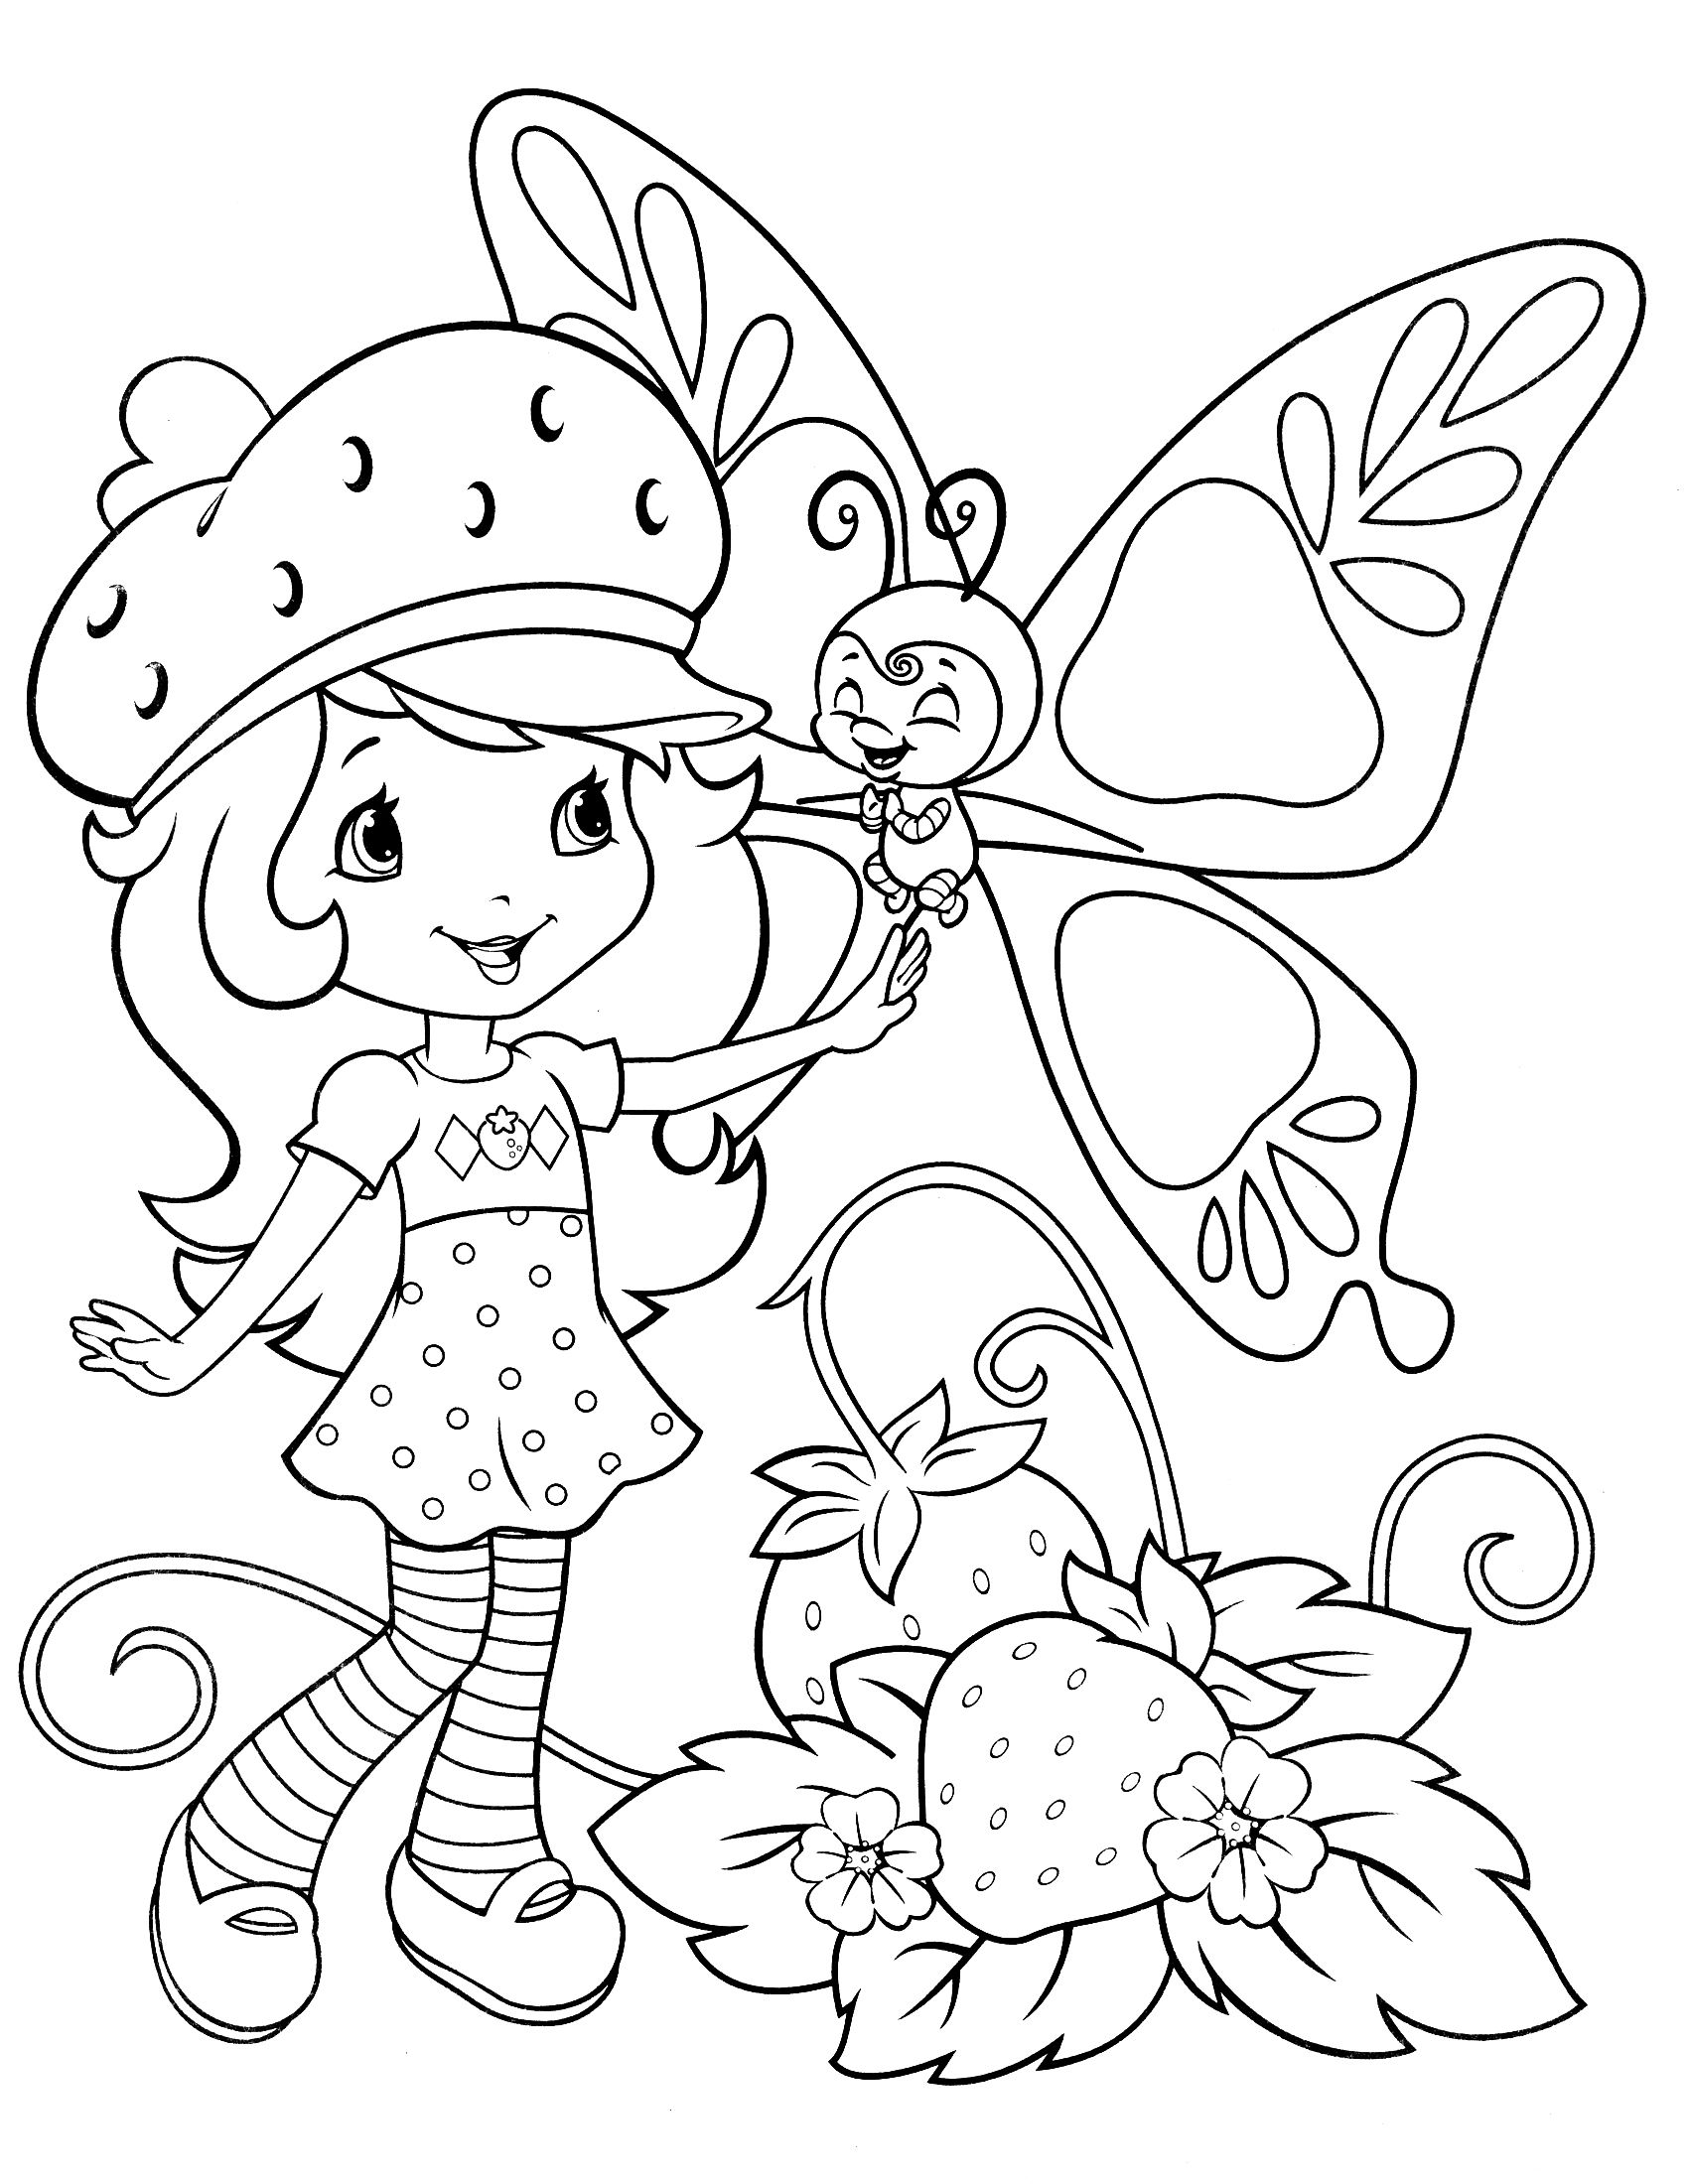 Strawberry Shortcake Coloring Page 62 Jpg 1700 2200 Libro De